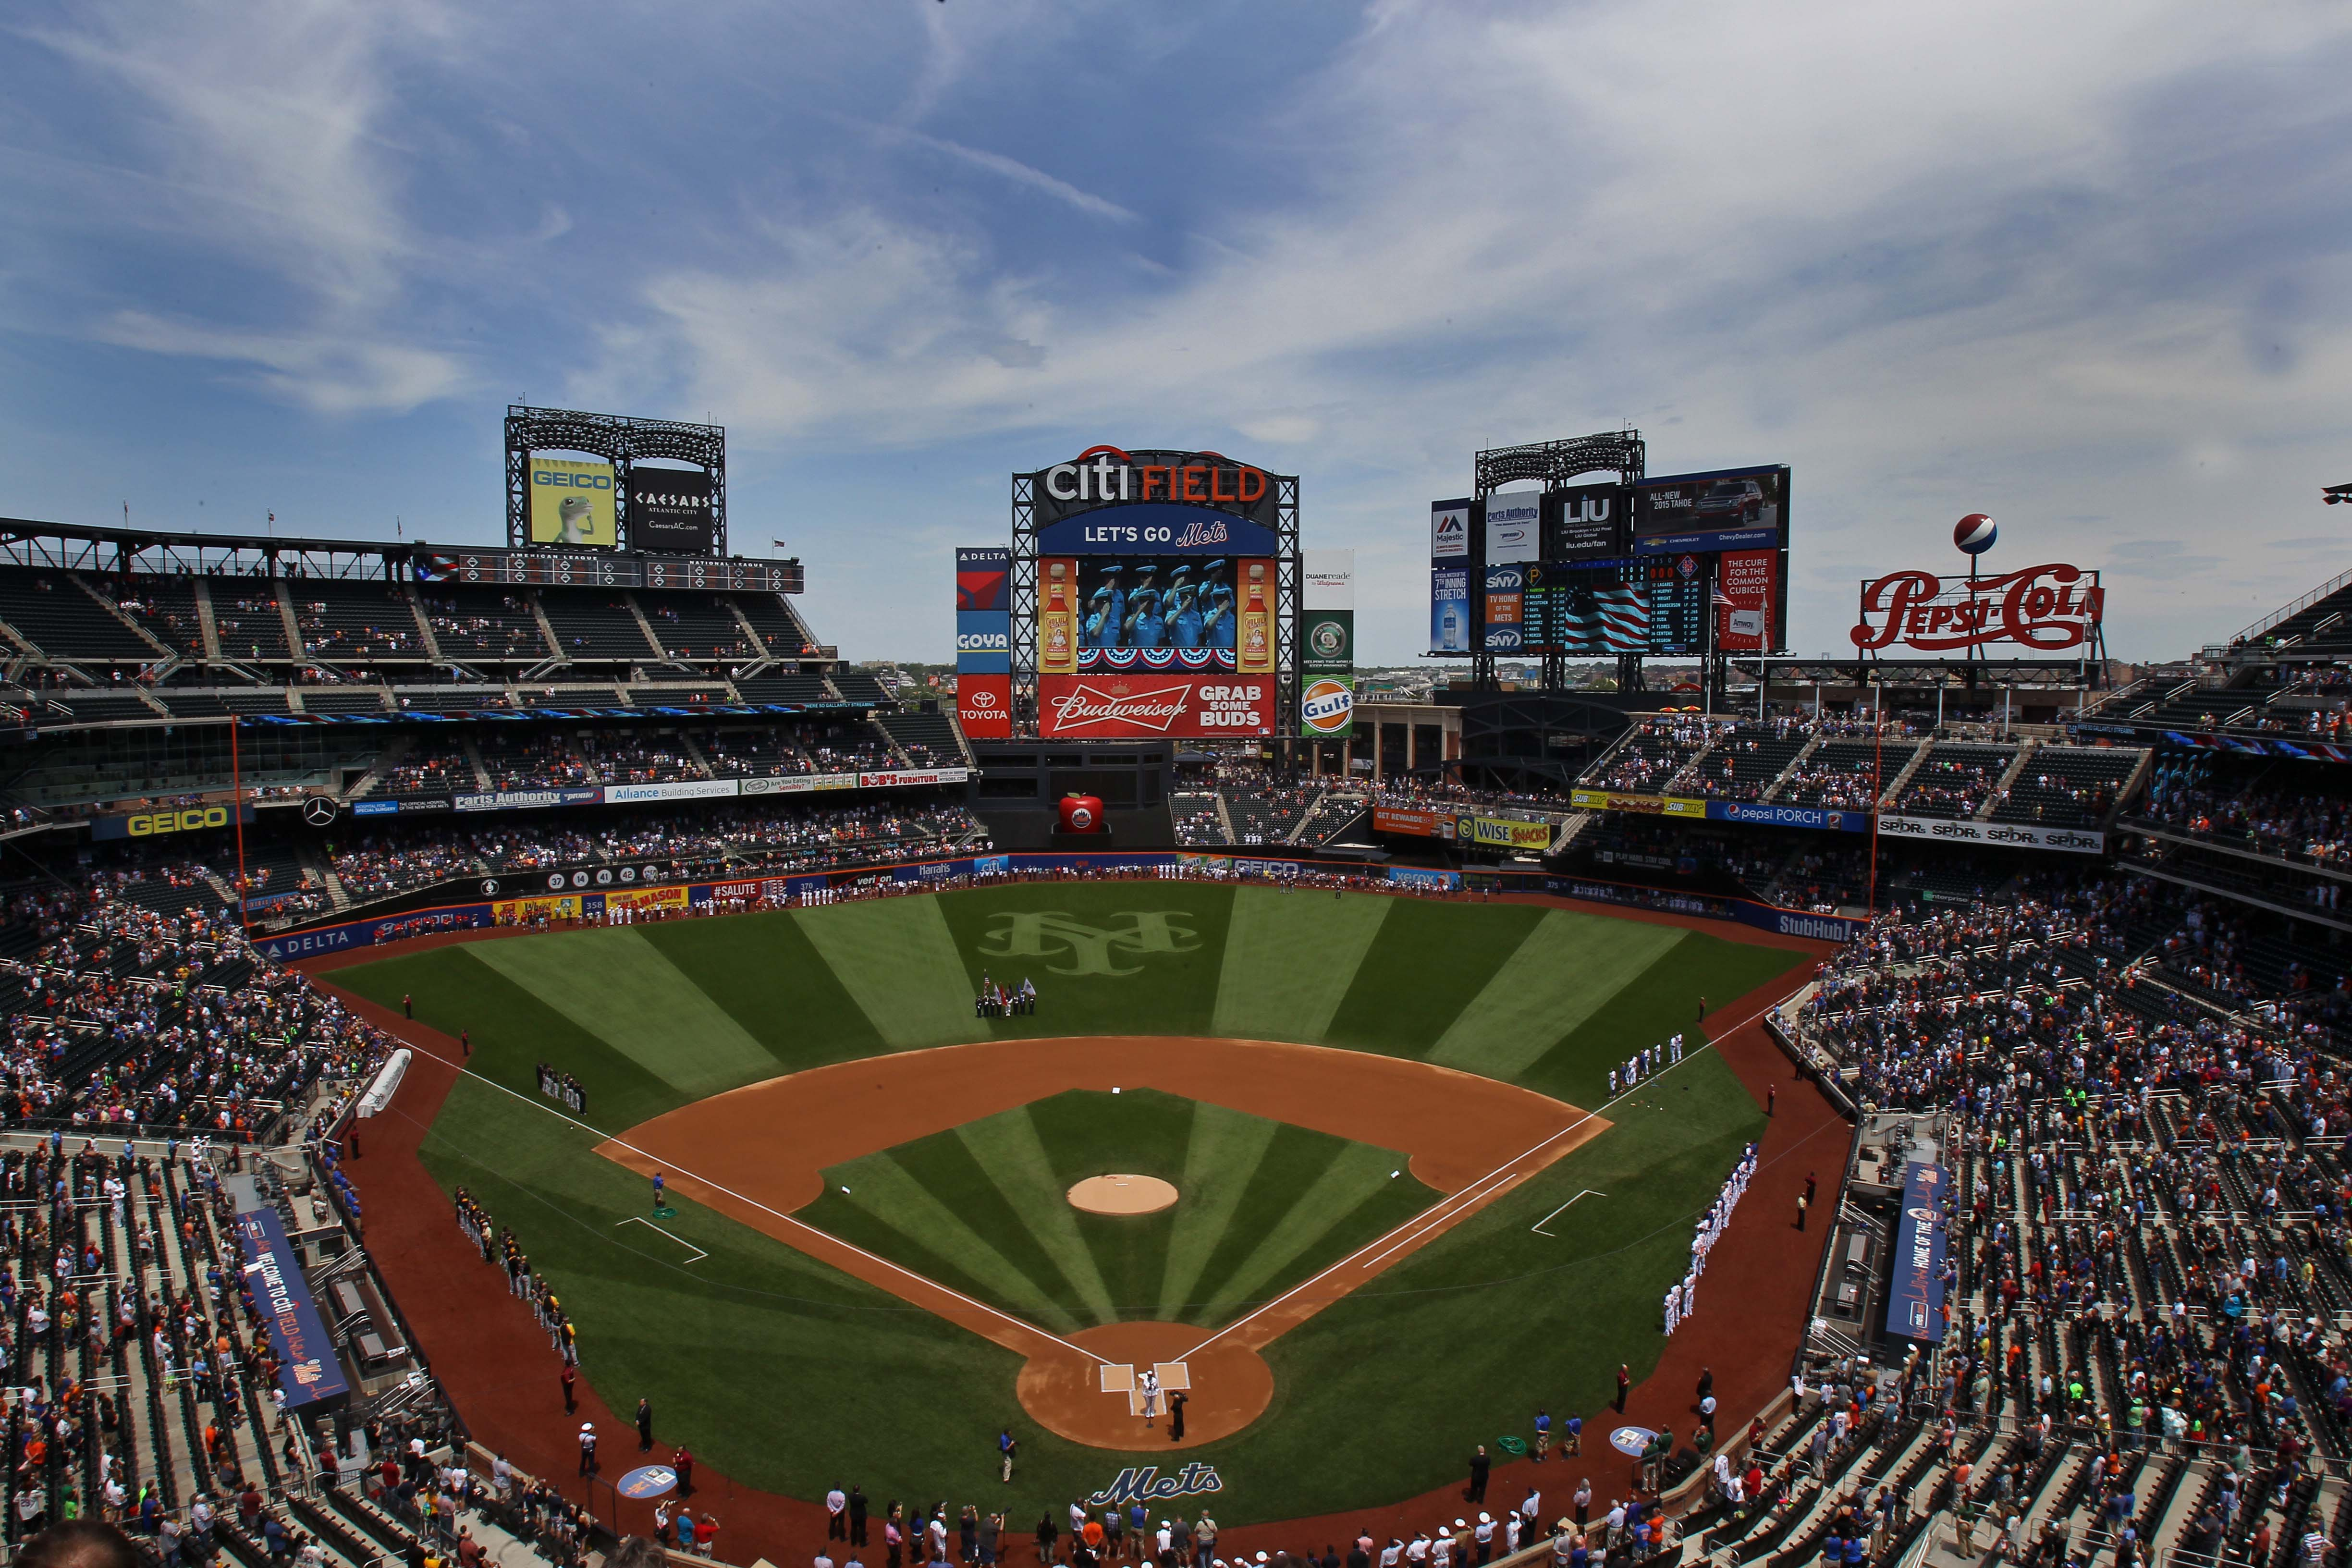 The Mets may be poised to take over as New York's baseball team, but fans already have a lot to be proud of.